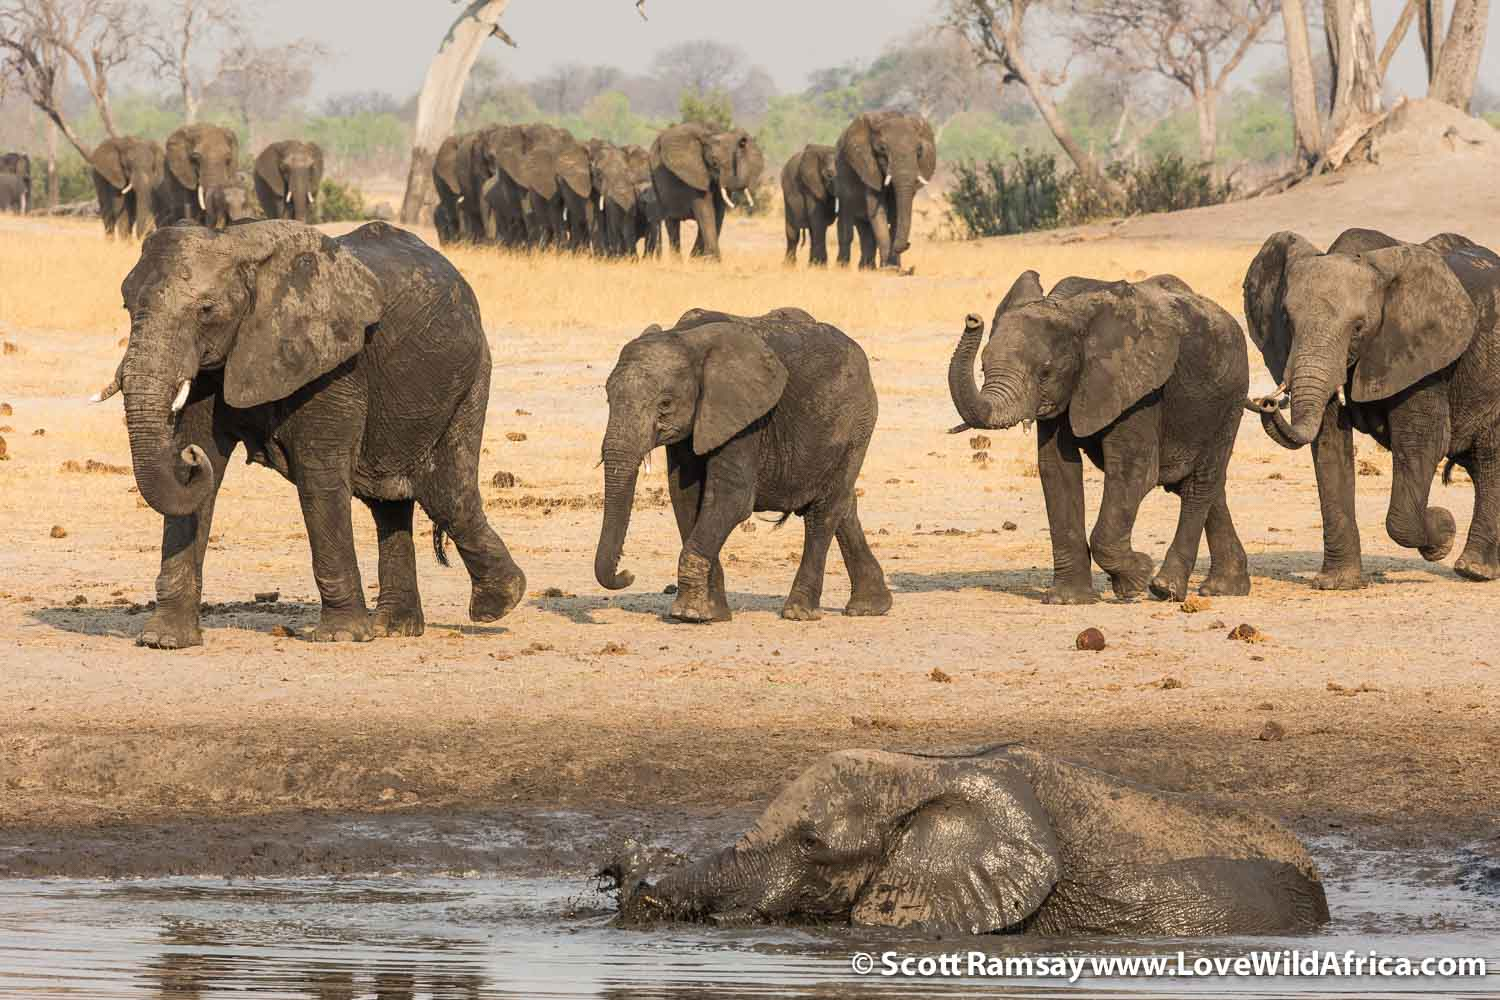 Hwange is the best place in Africa to see elephants...after Chobe National Park. You can see why!